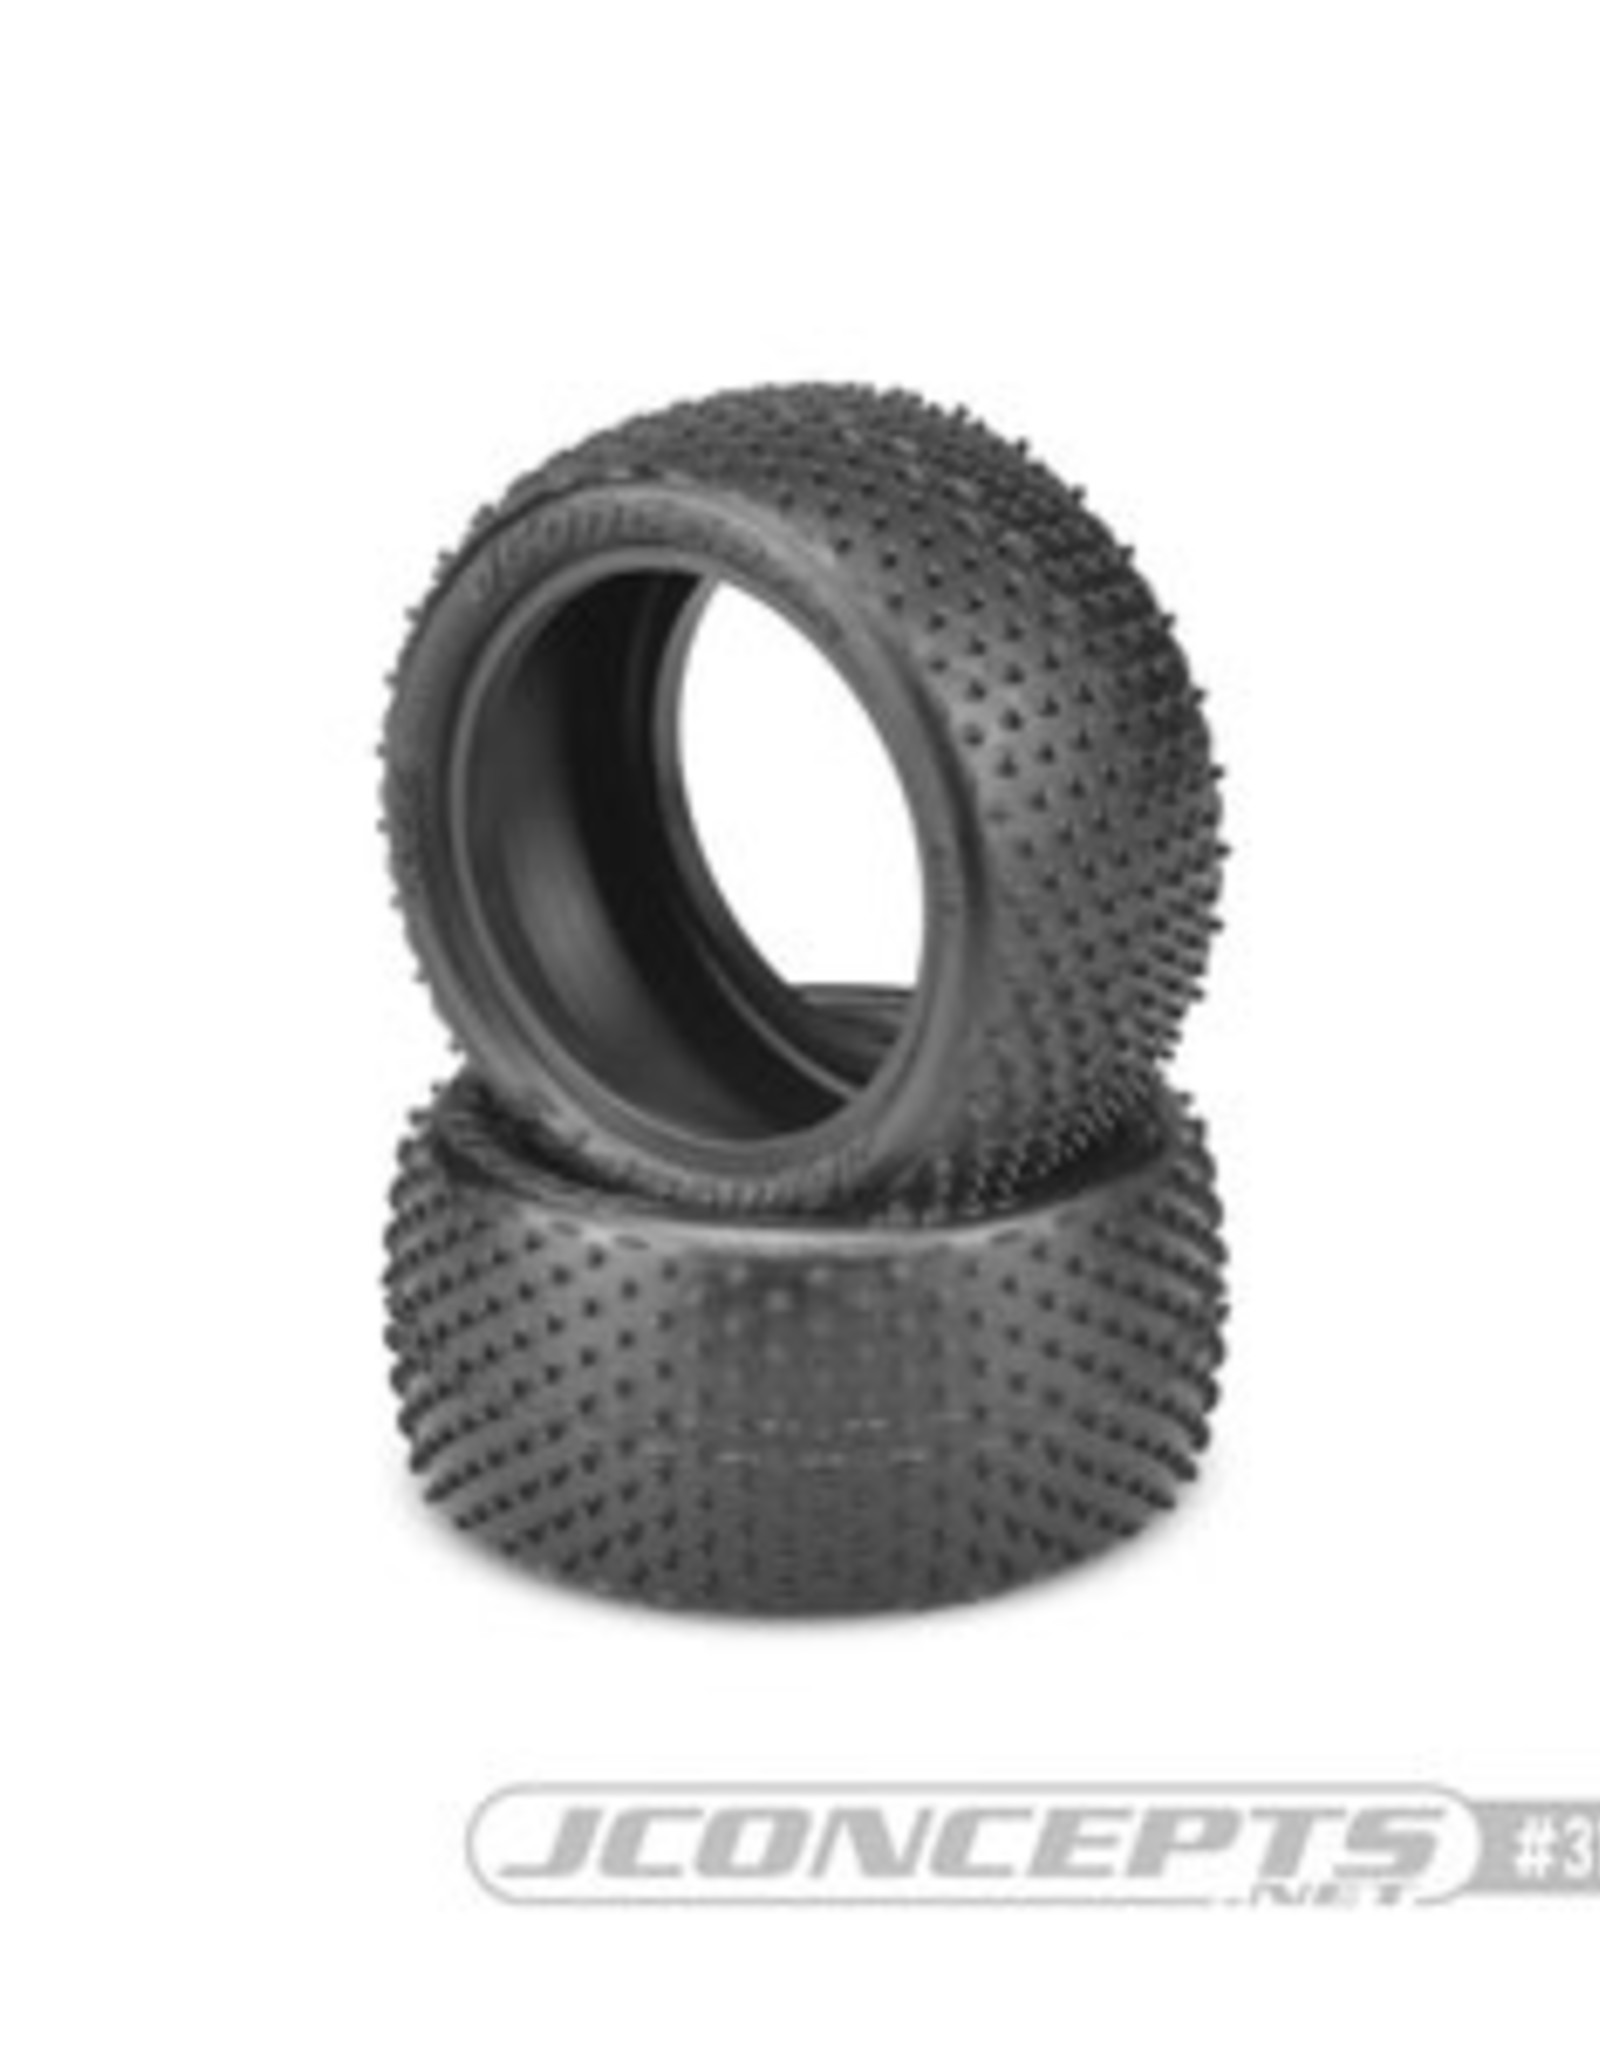 JConcepts Nessi 1/10 Buggy Rear Tire, for Carpet/Astroturf, Pink Compound  JCO3167010